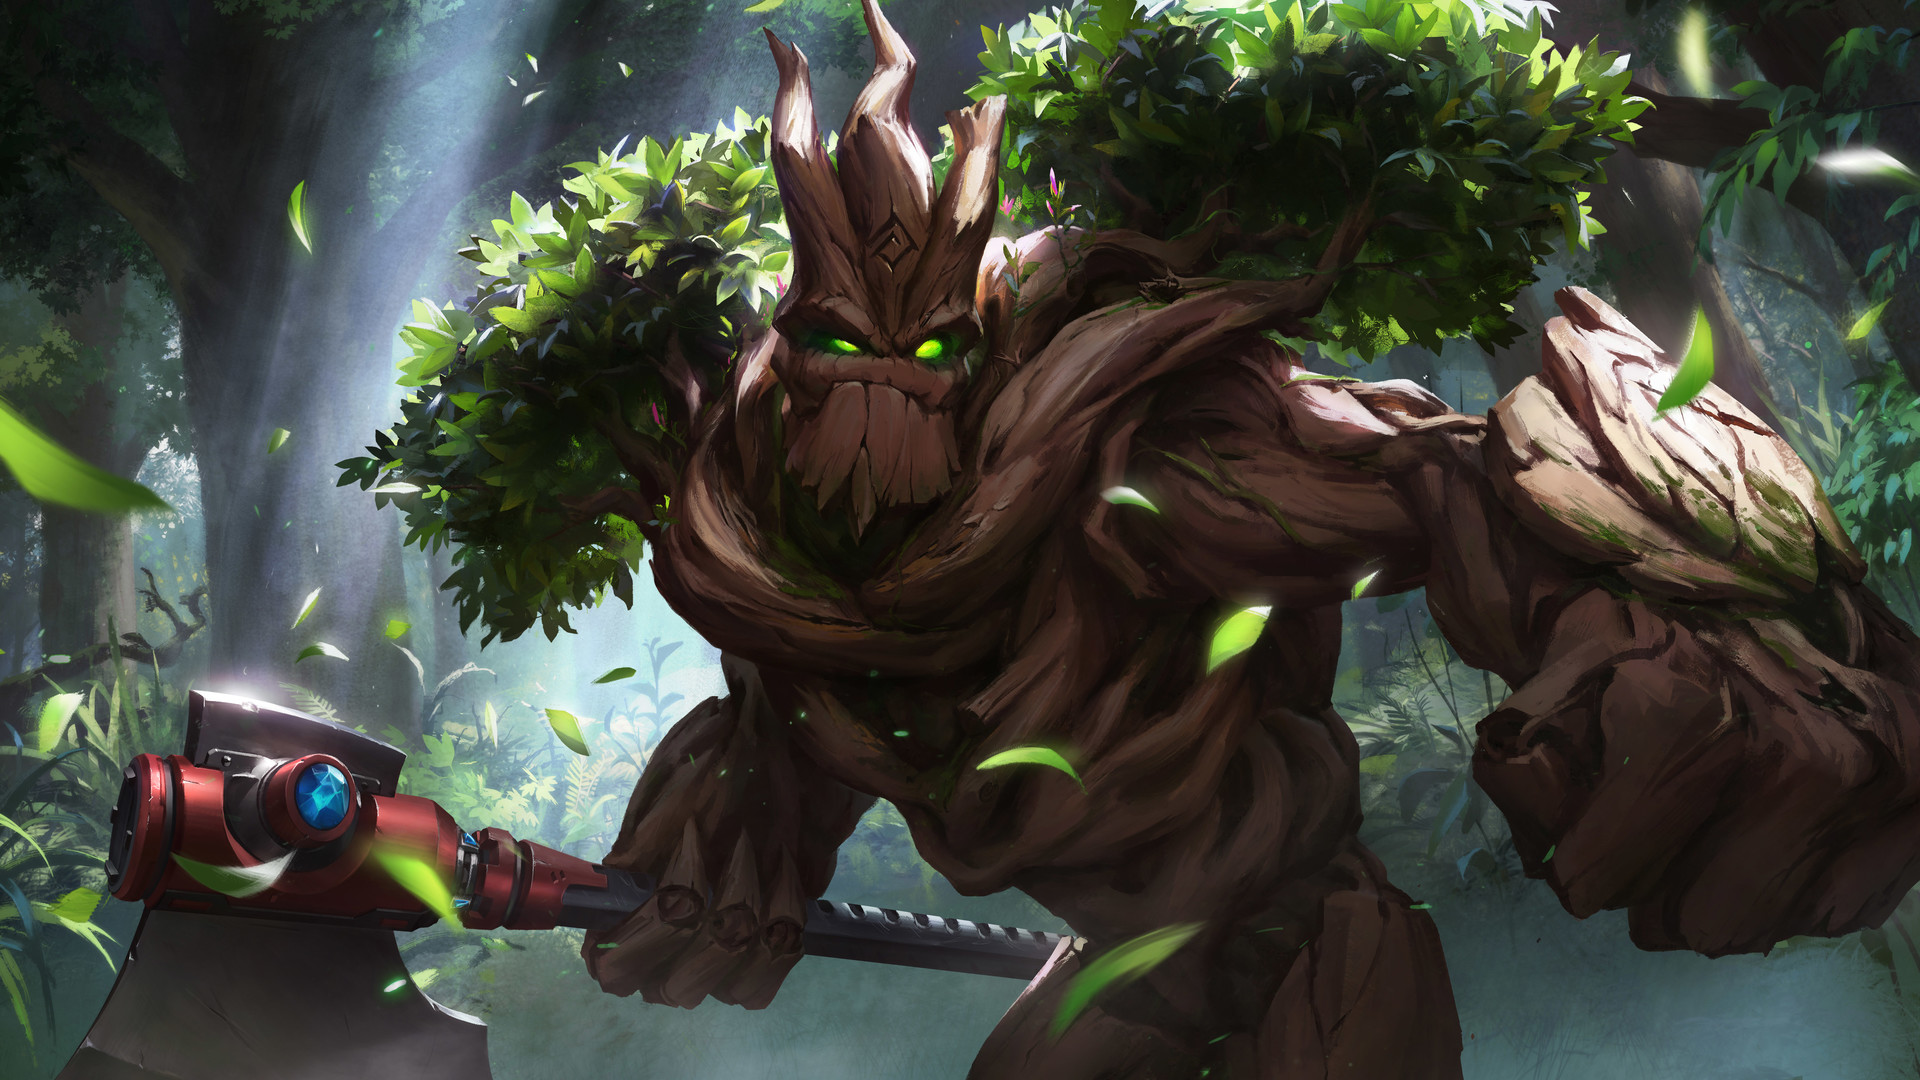 axe xiao guang sun paladins: champions of the realm trees foliage